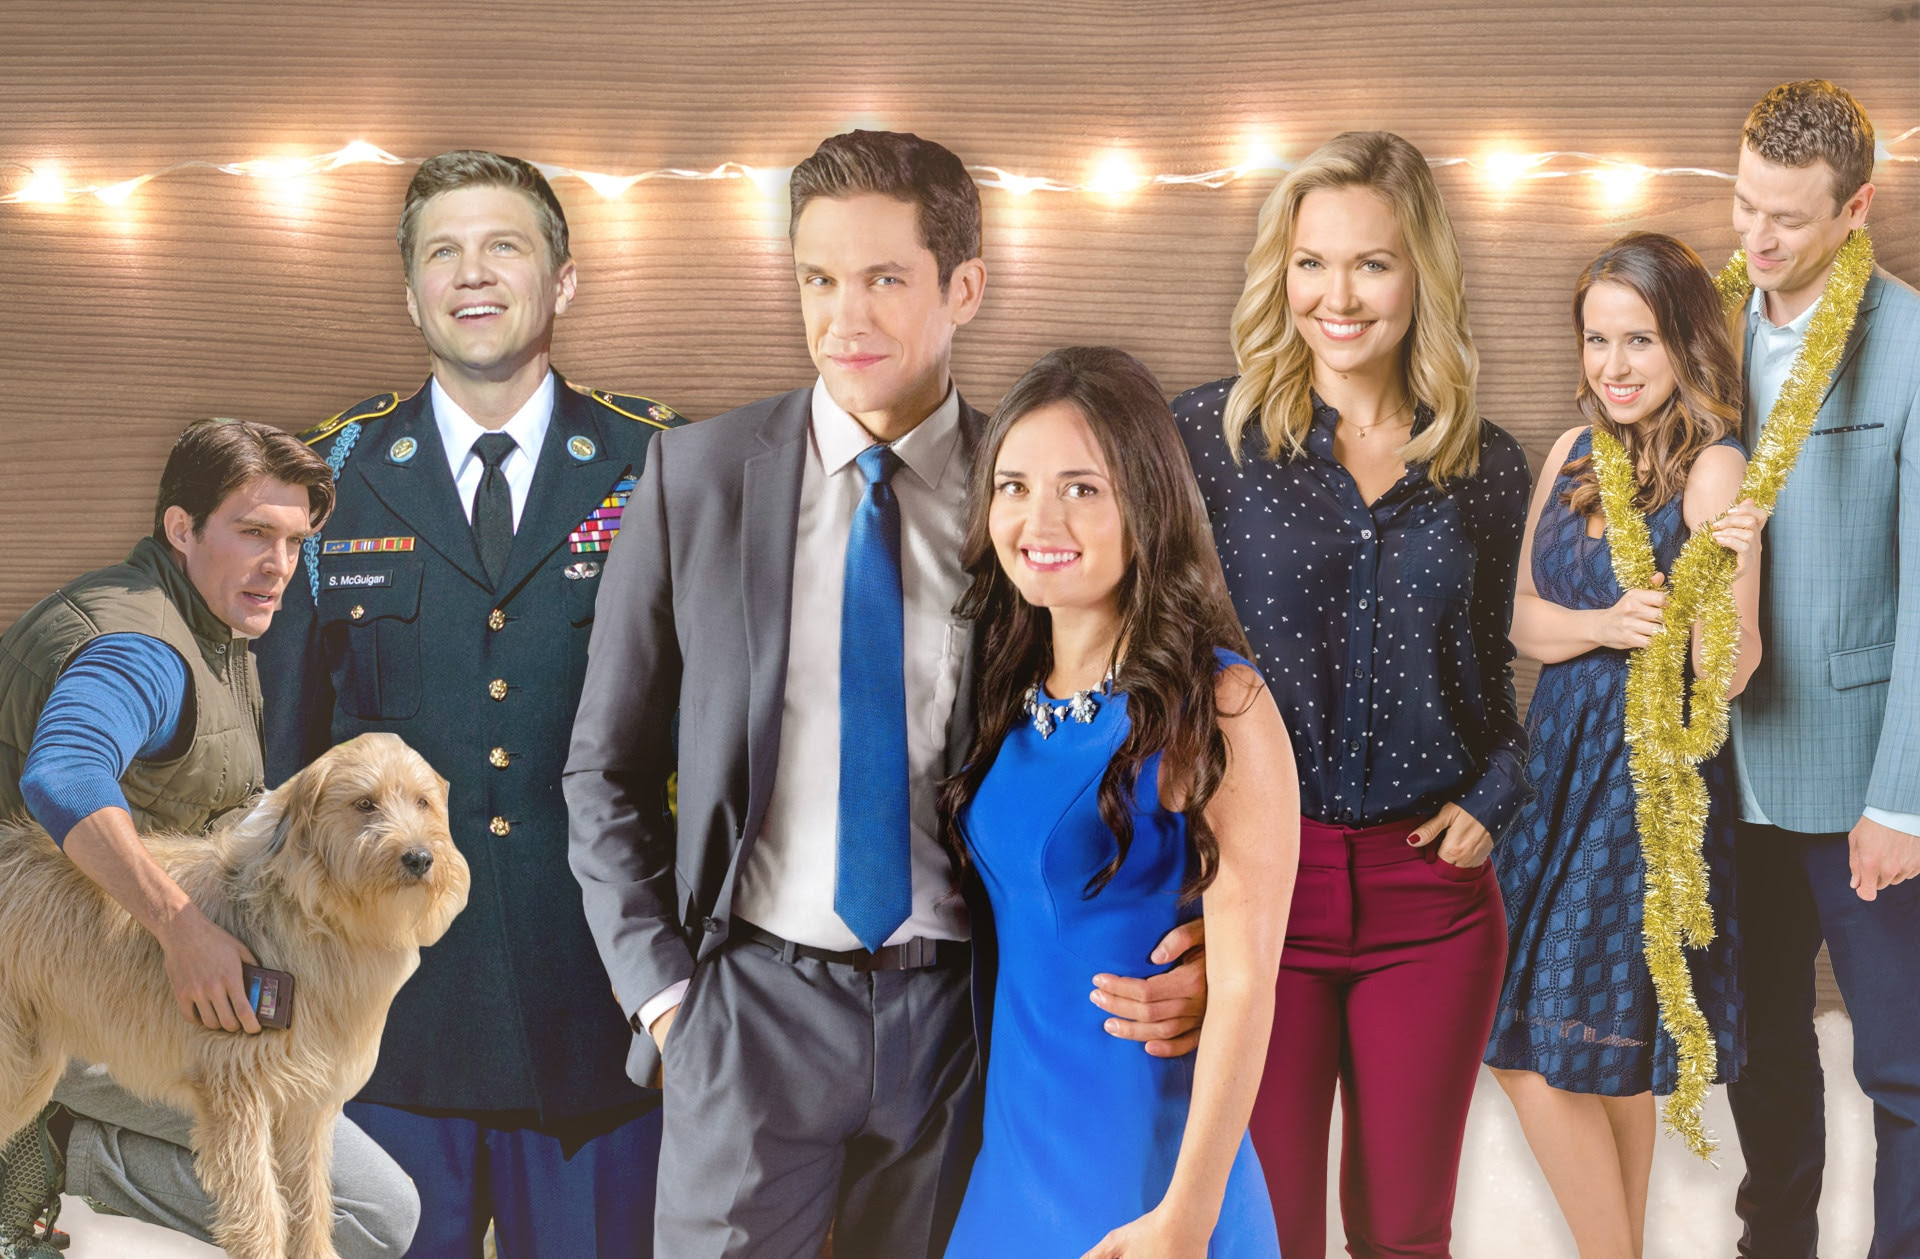 We Own Christmas: How The Hallmark Channel Found Massive ...